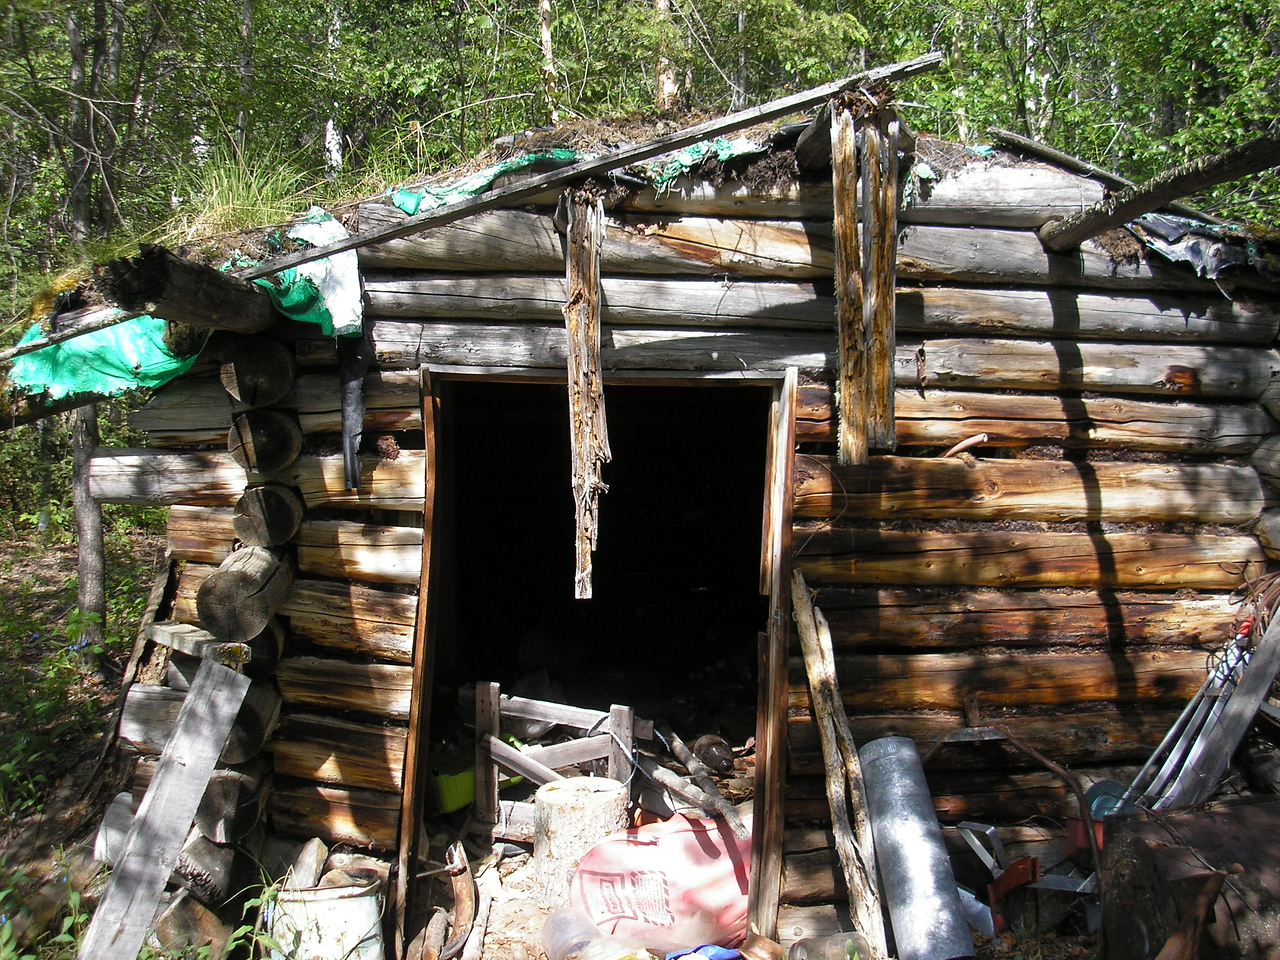 The cabin was very old and was abandoned with things inside.